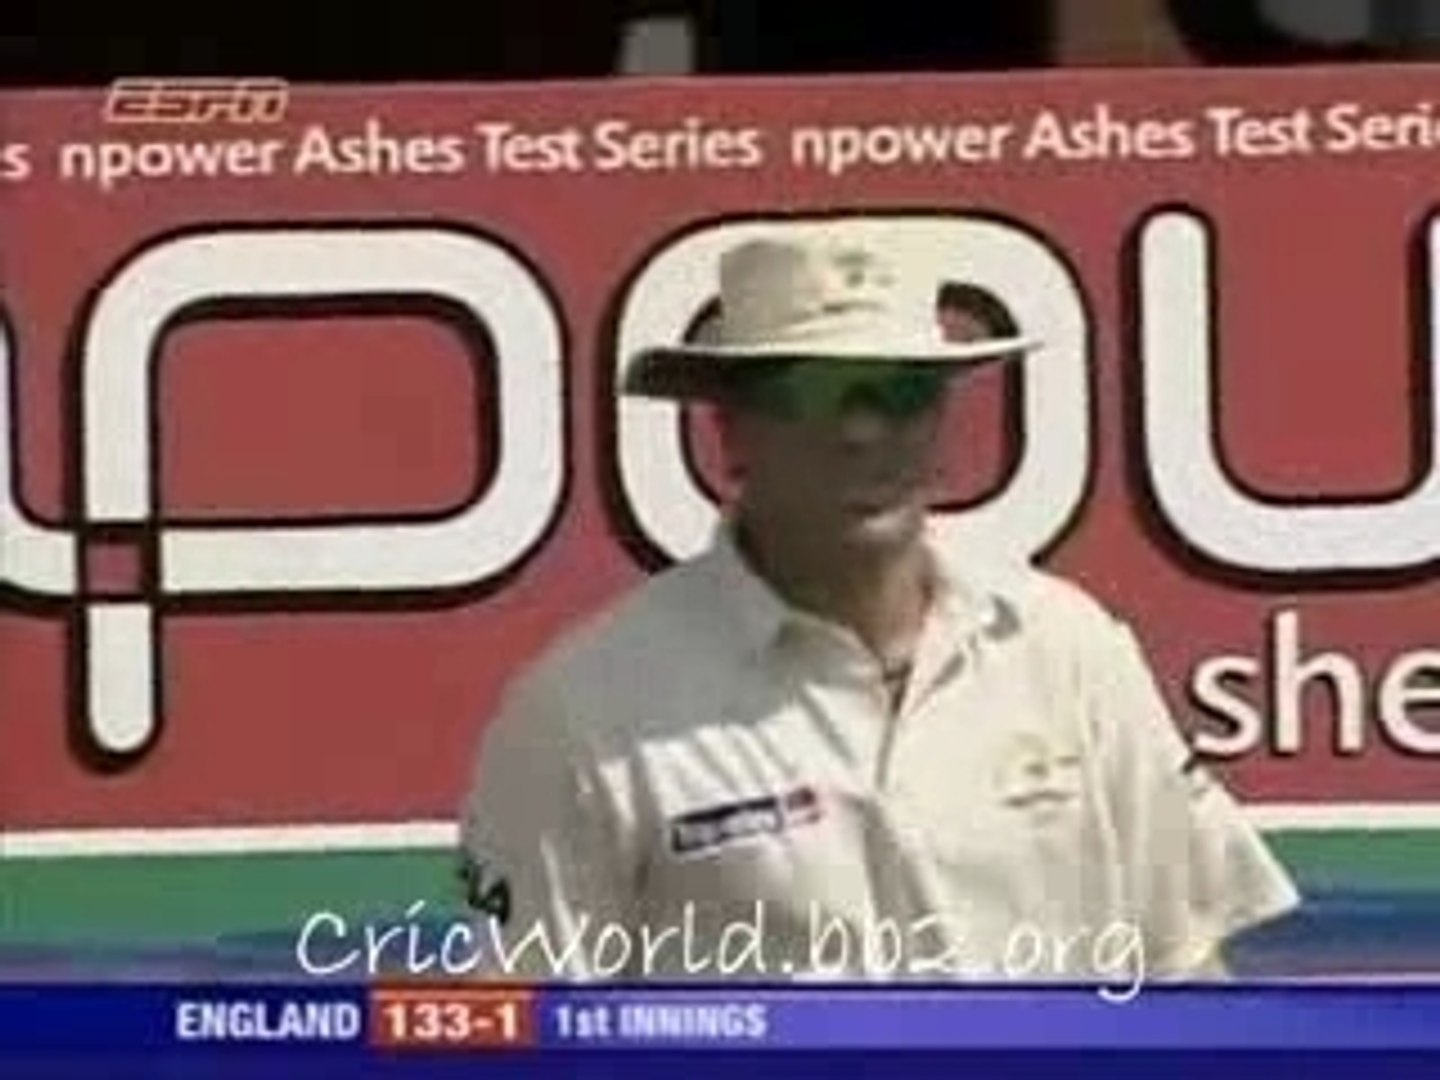 Ashes 2005 Hero - Michael Vaughan's 166 2nd Test Ashes 2005